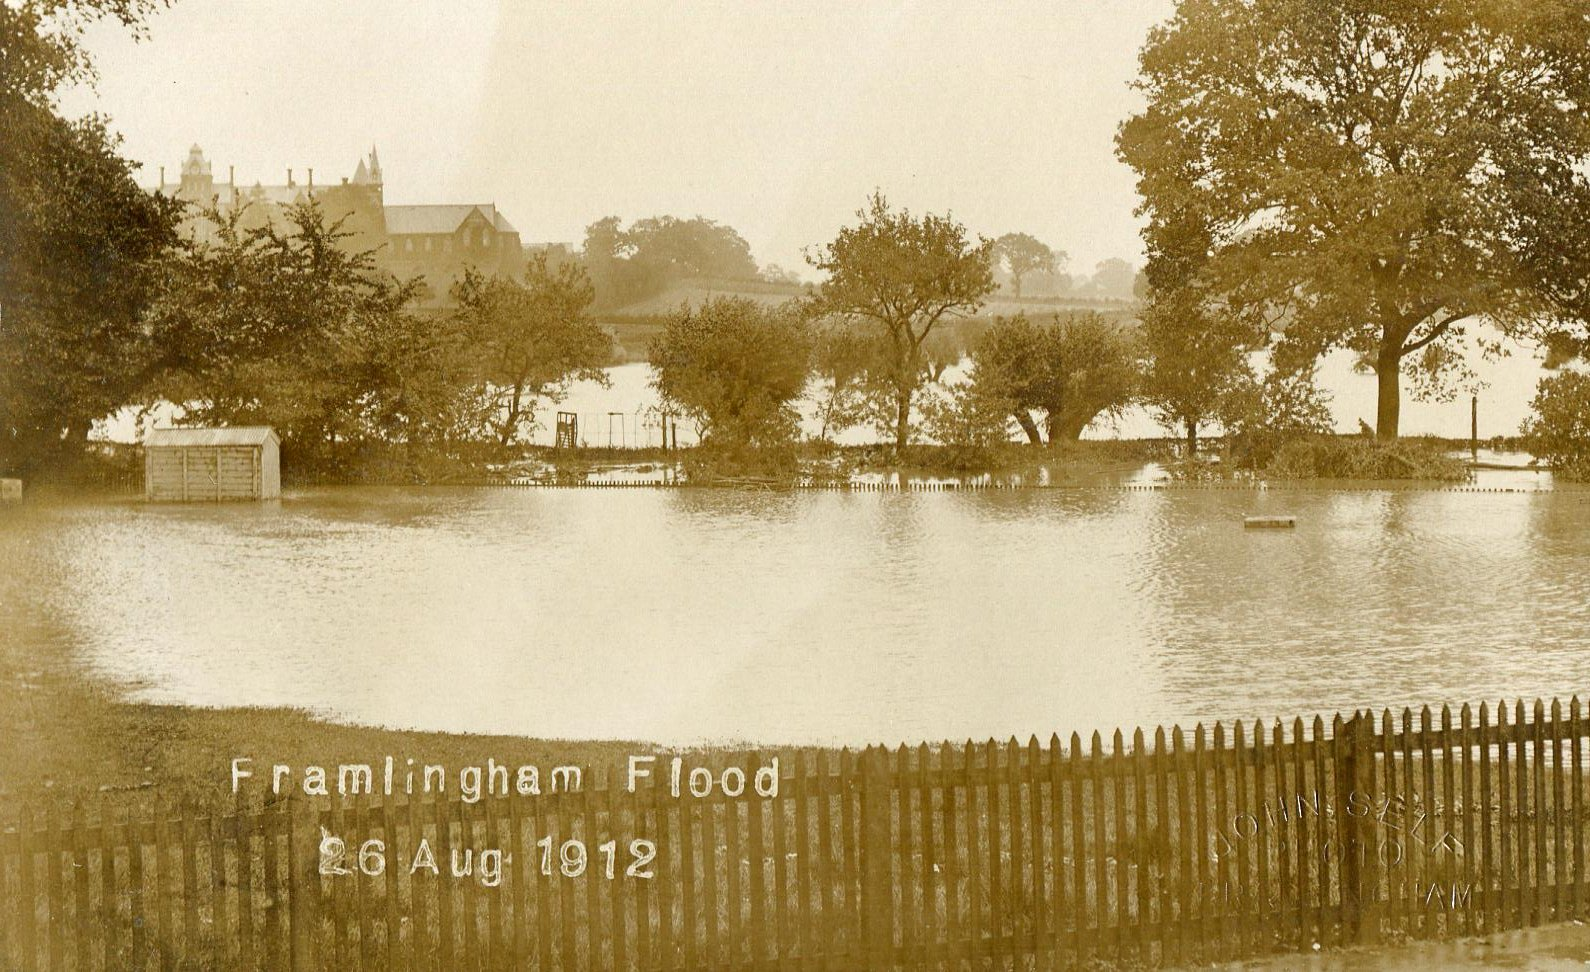 Sale Yard flood, 1912